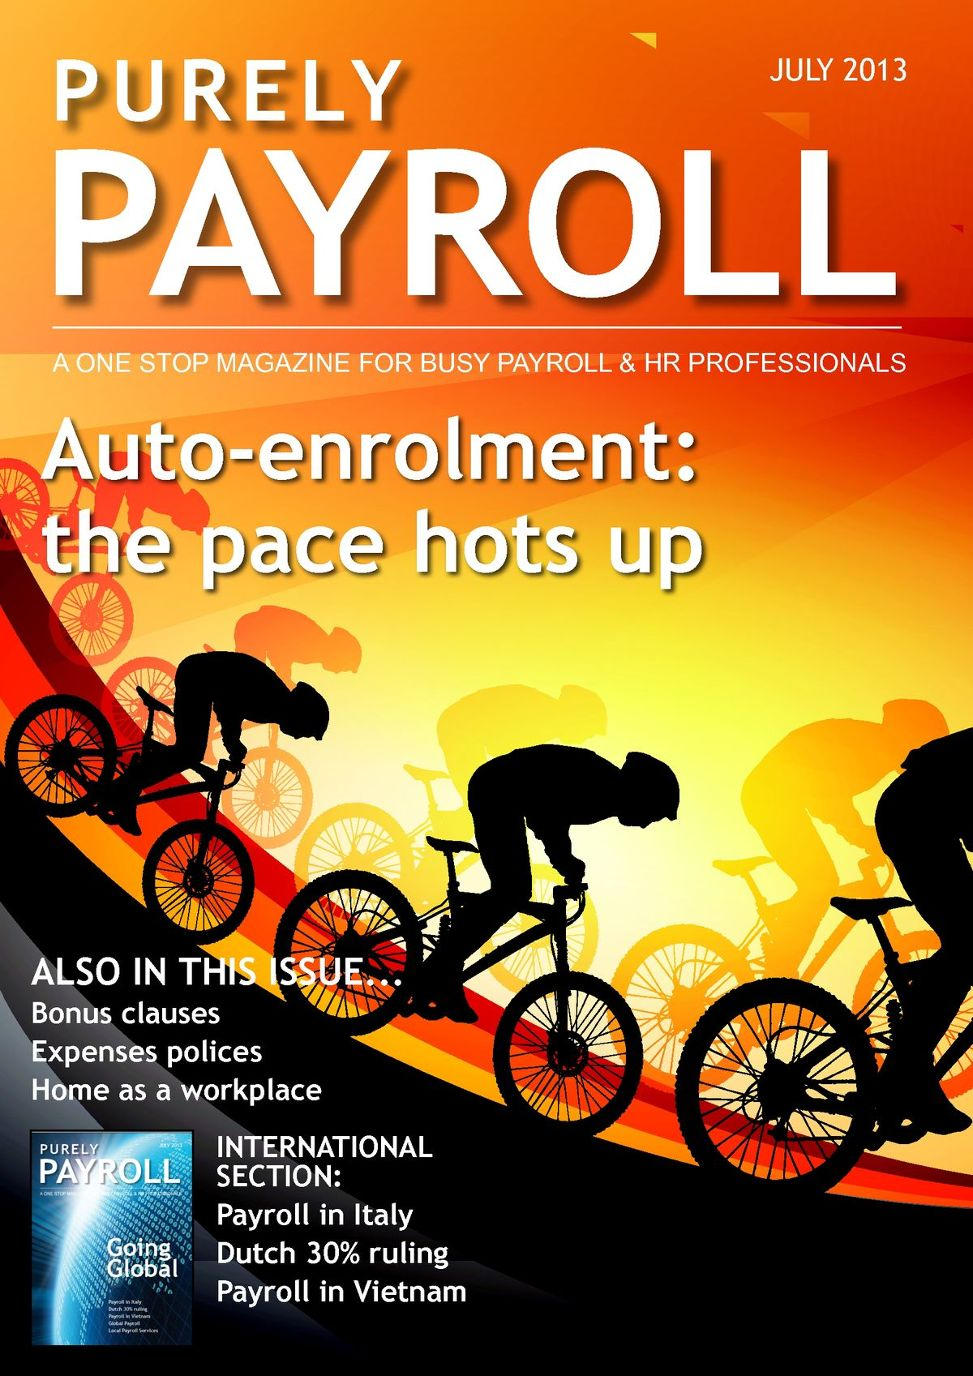 Purely Payroll magazin WePayPeople